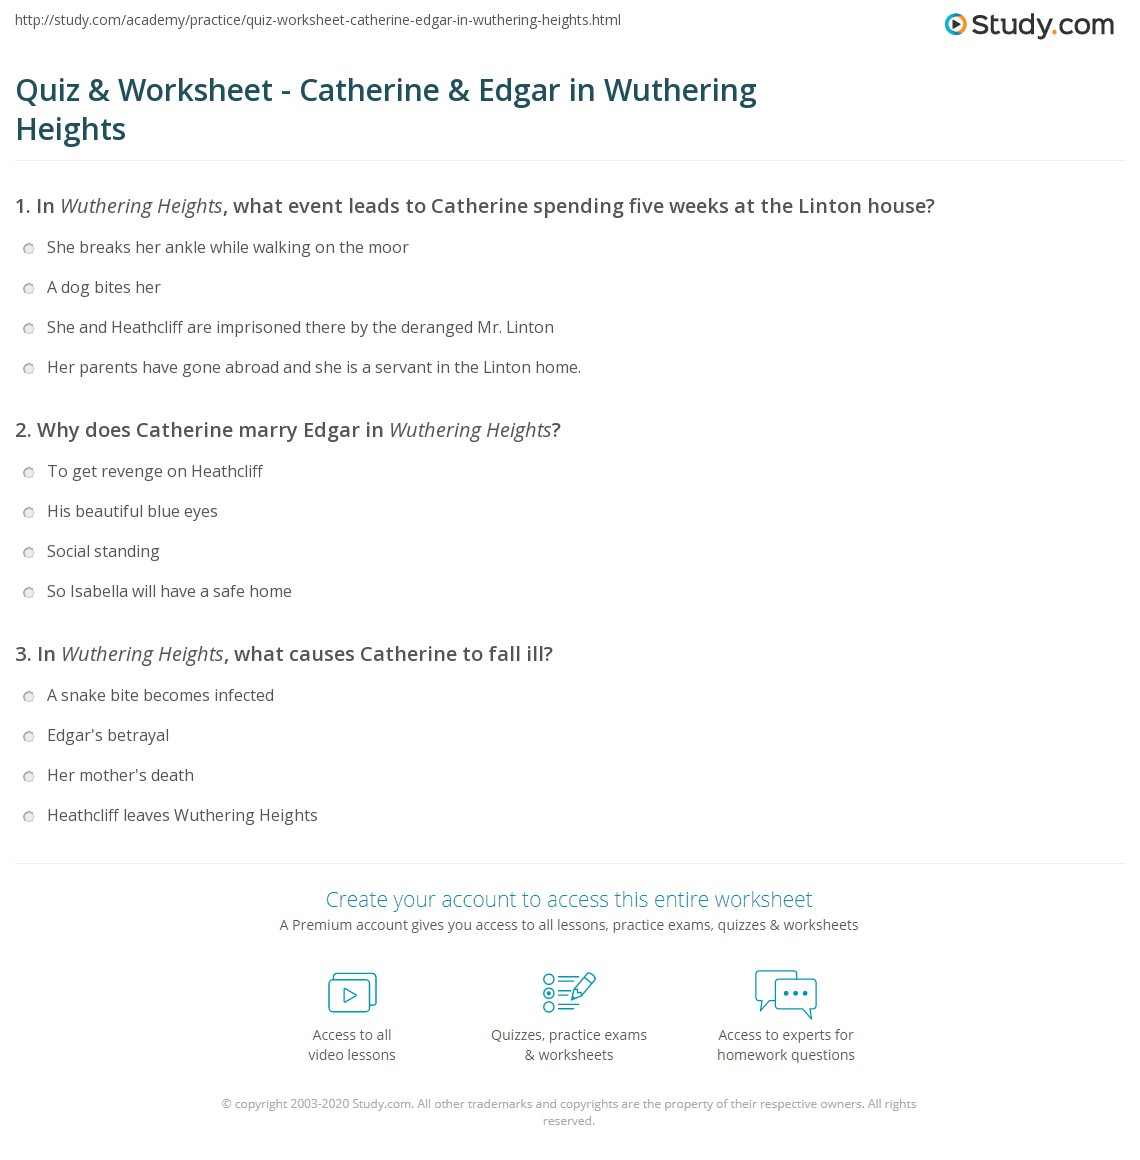 quiz worksheet catherine edgar in wuthering heights com print catherine edgar s relationship in wuthering heights analysis quotes worksheet